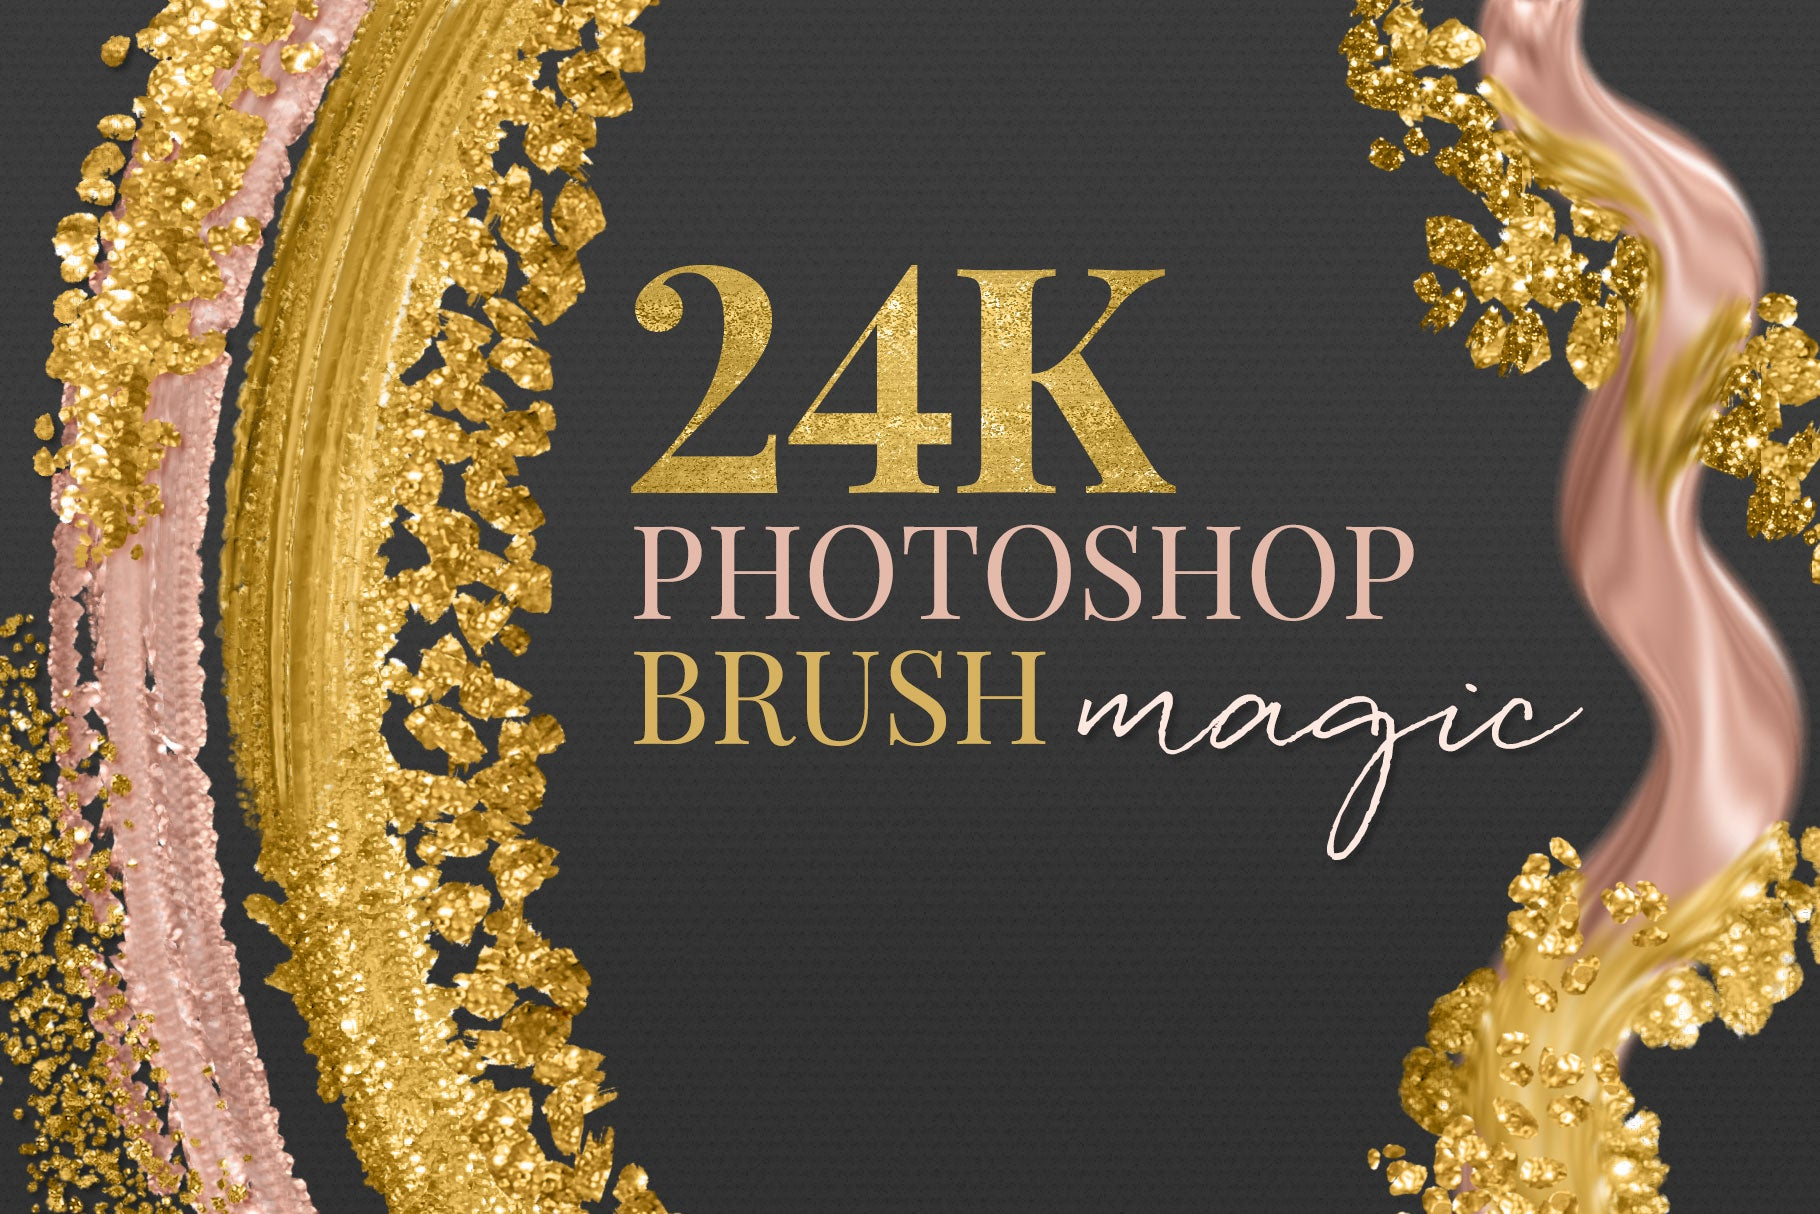 24k liquid, metallic gold photoshop brush preview cover image